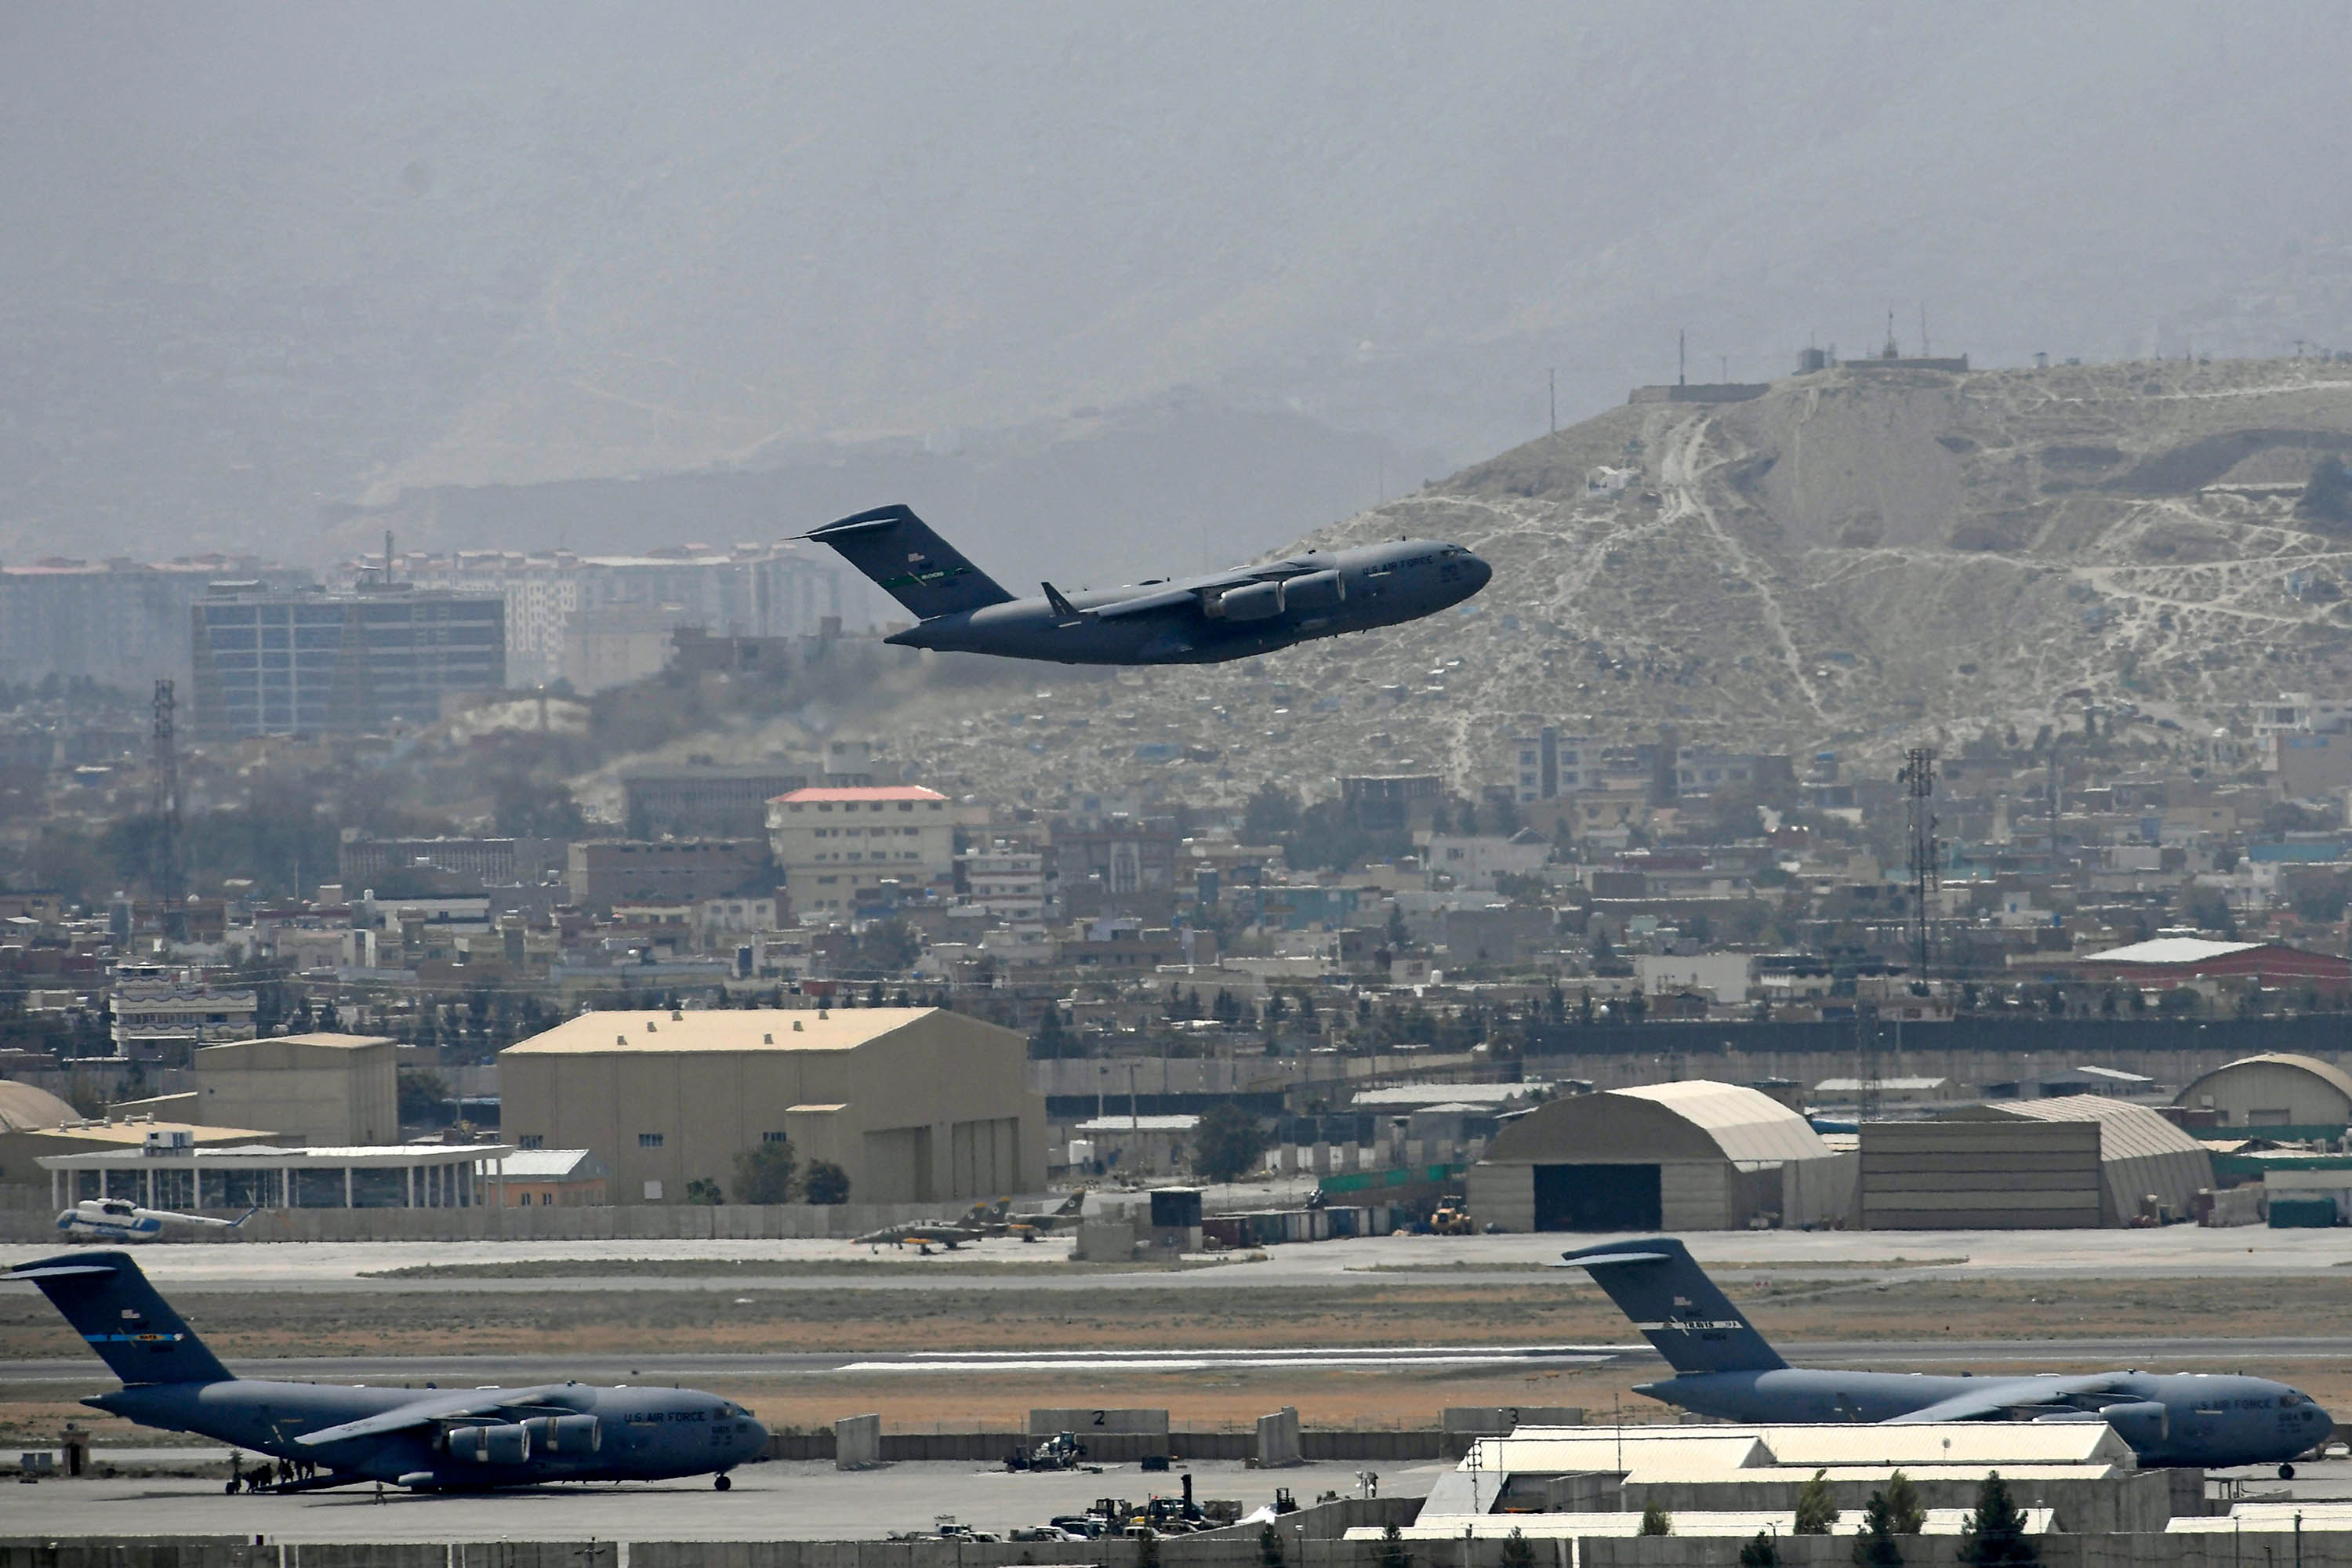 An US Air Force aircraft takes off from the airport in Kabul on August 30.